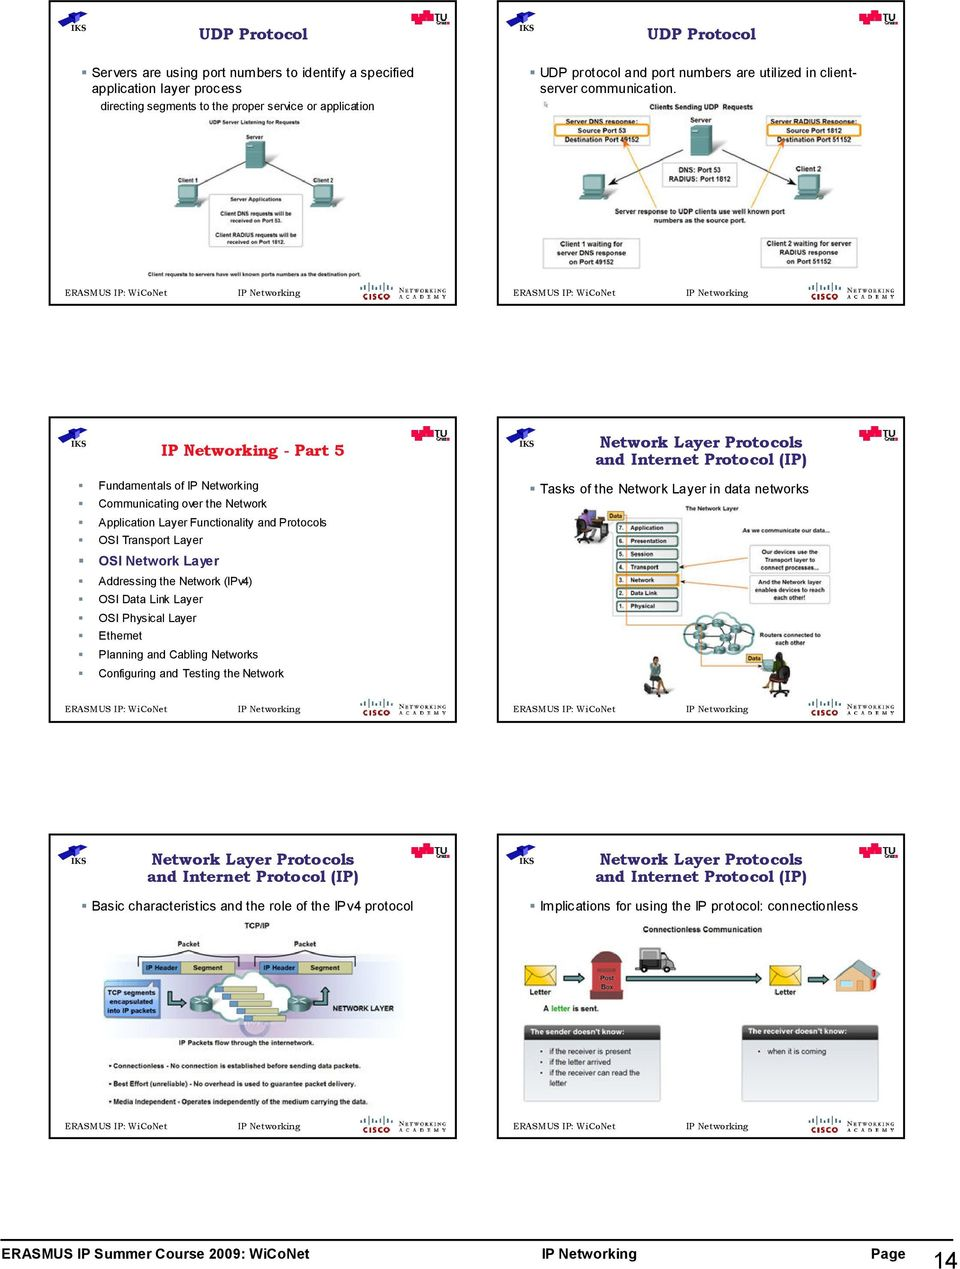 - Part 5 Network Layer Protocols and Internet Protocol (IP) Fundamentals of Communicating over the Network Application Layer Functionality and Protocols OSI Transport Layer OSI Network Layer